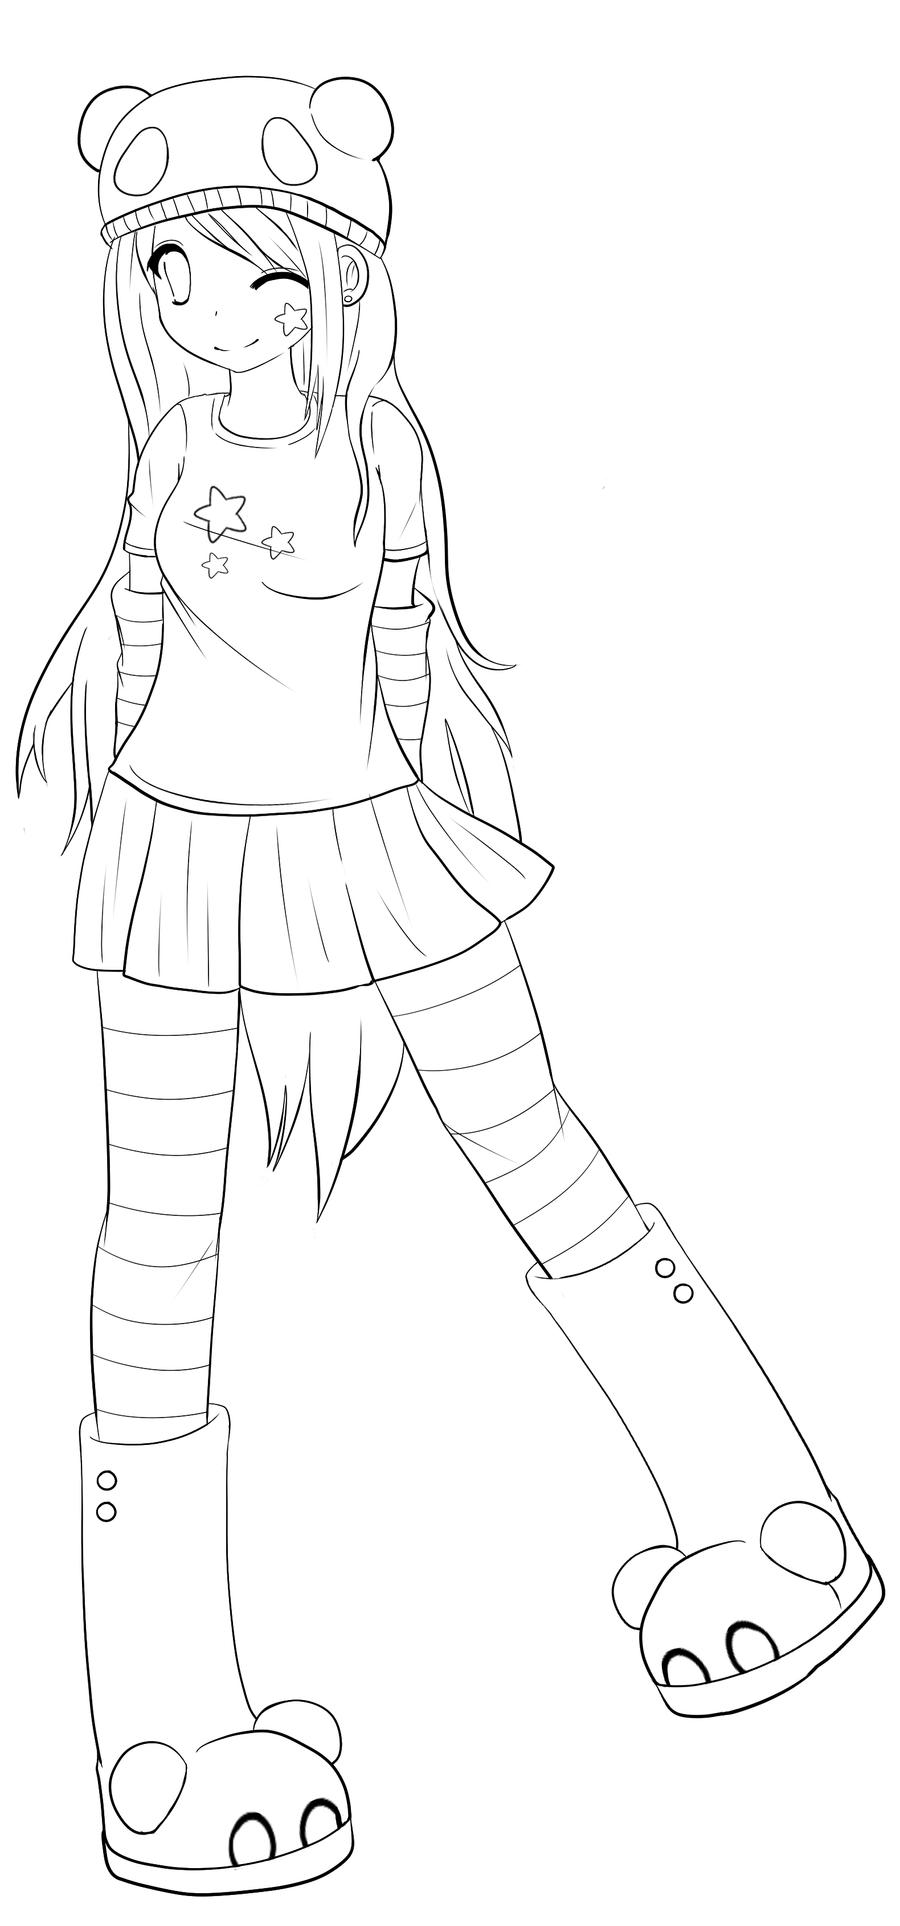 anime angel coloring pages - color me panda girl by lisey chu on deviantart